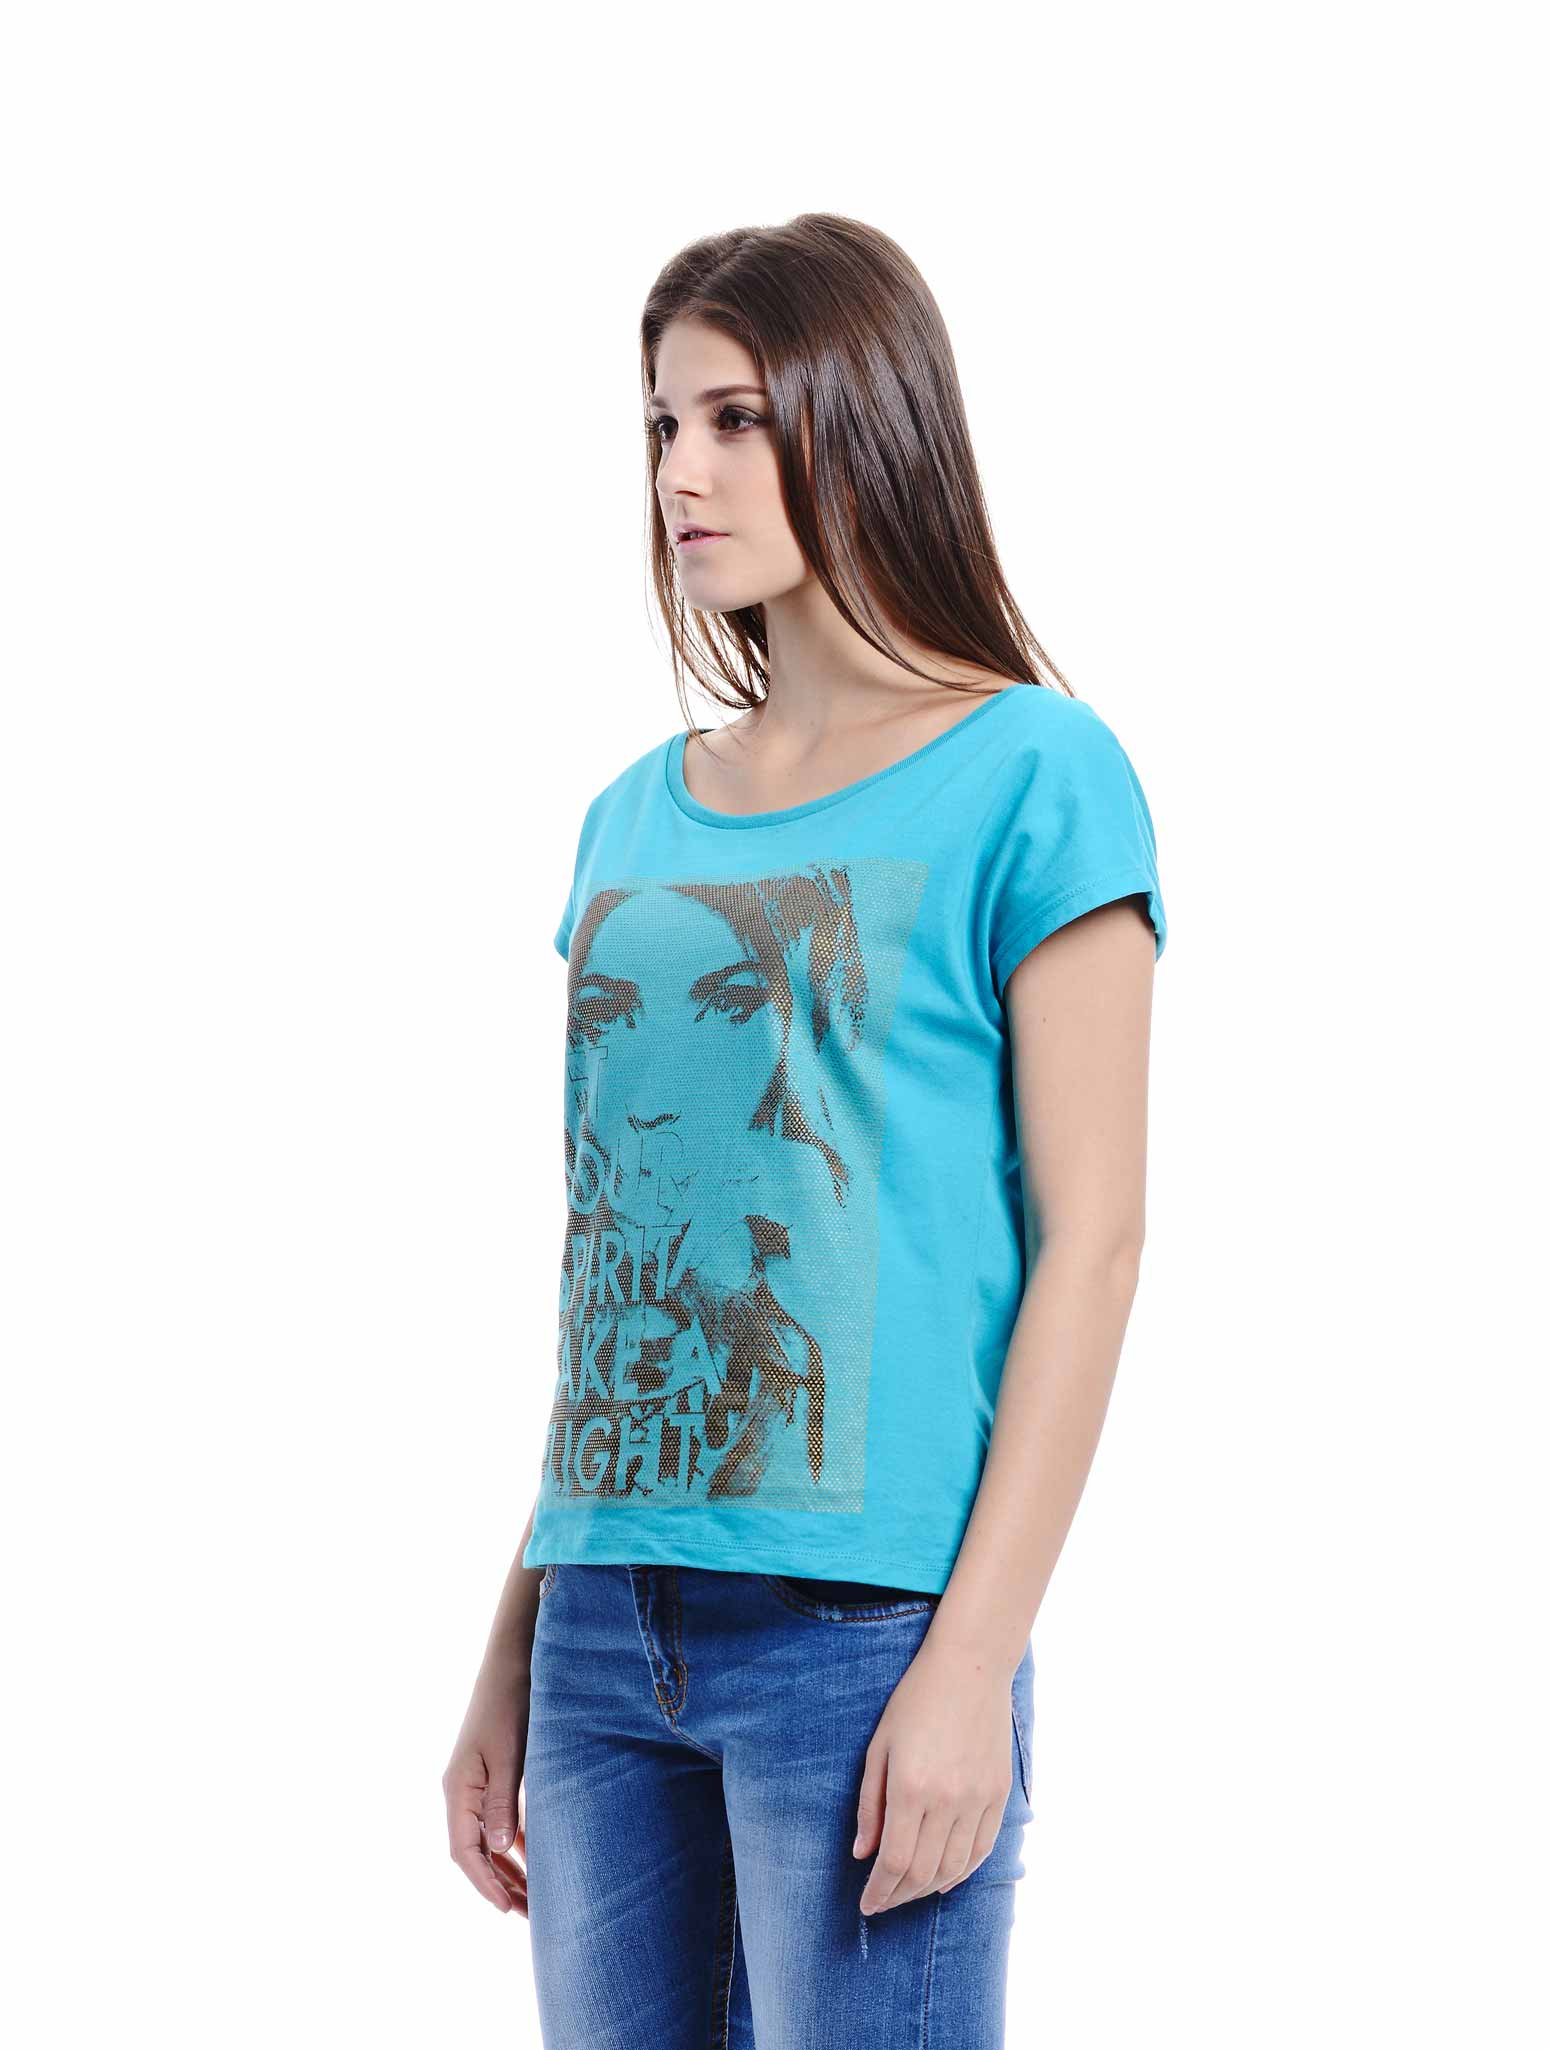 teal short sleeve tee